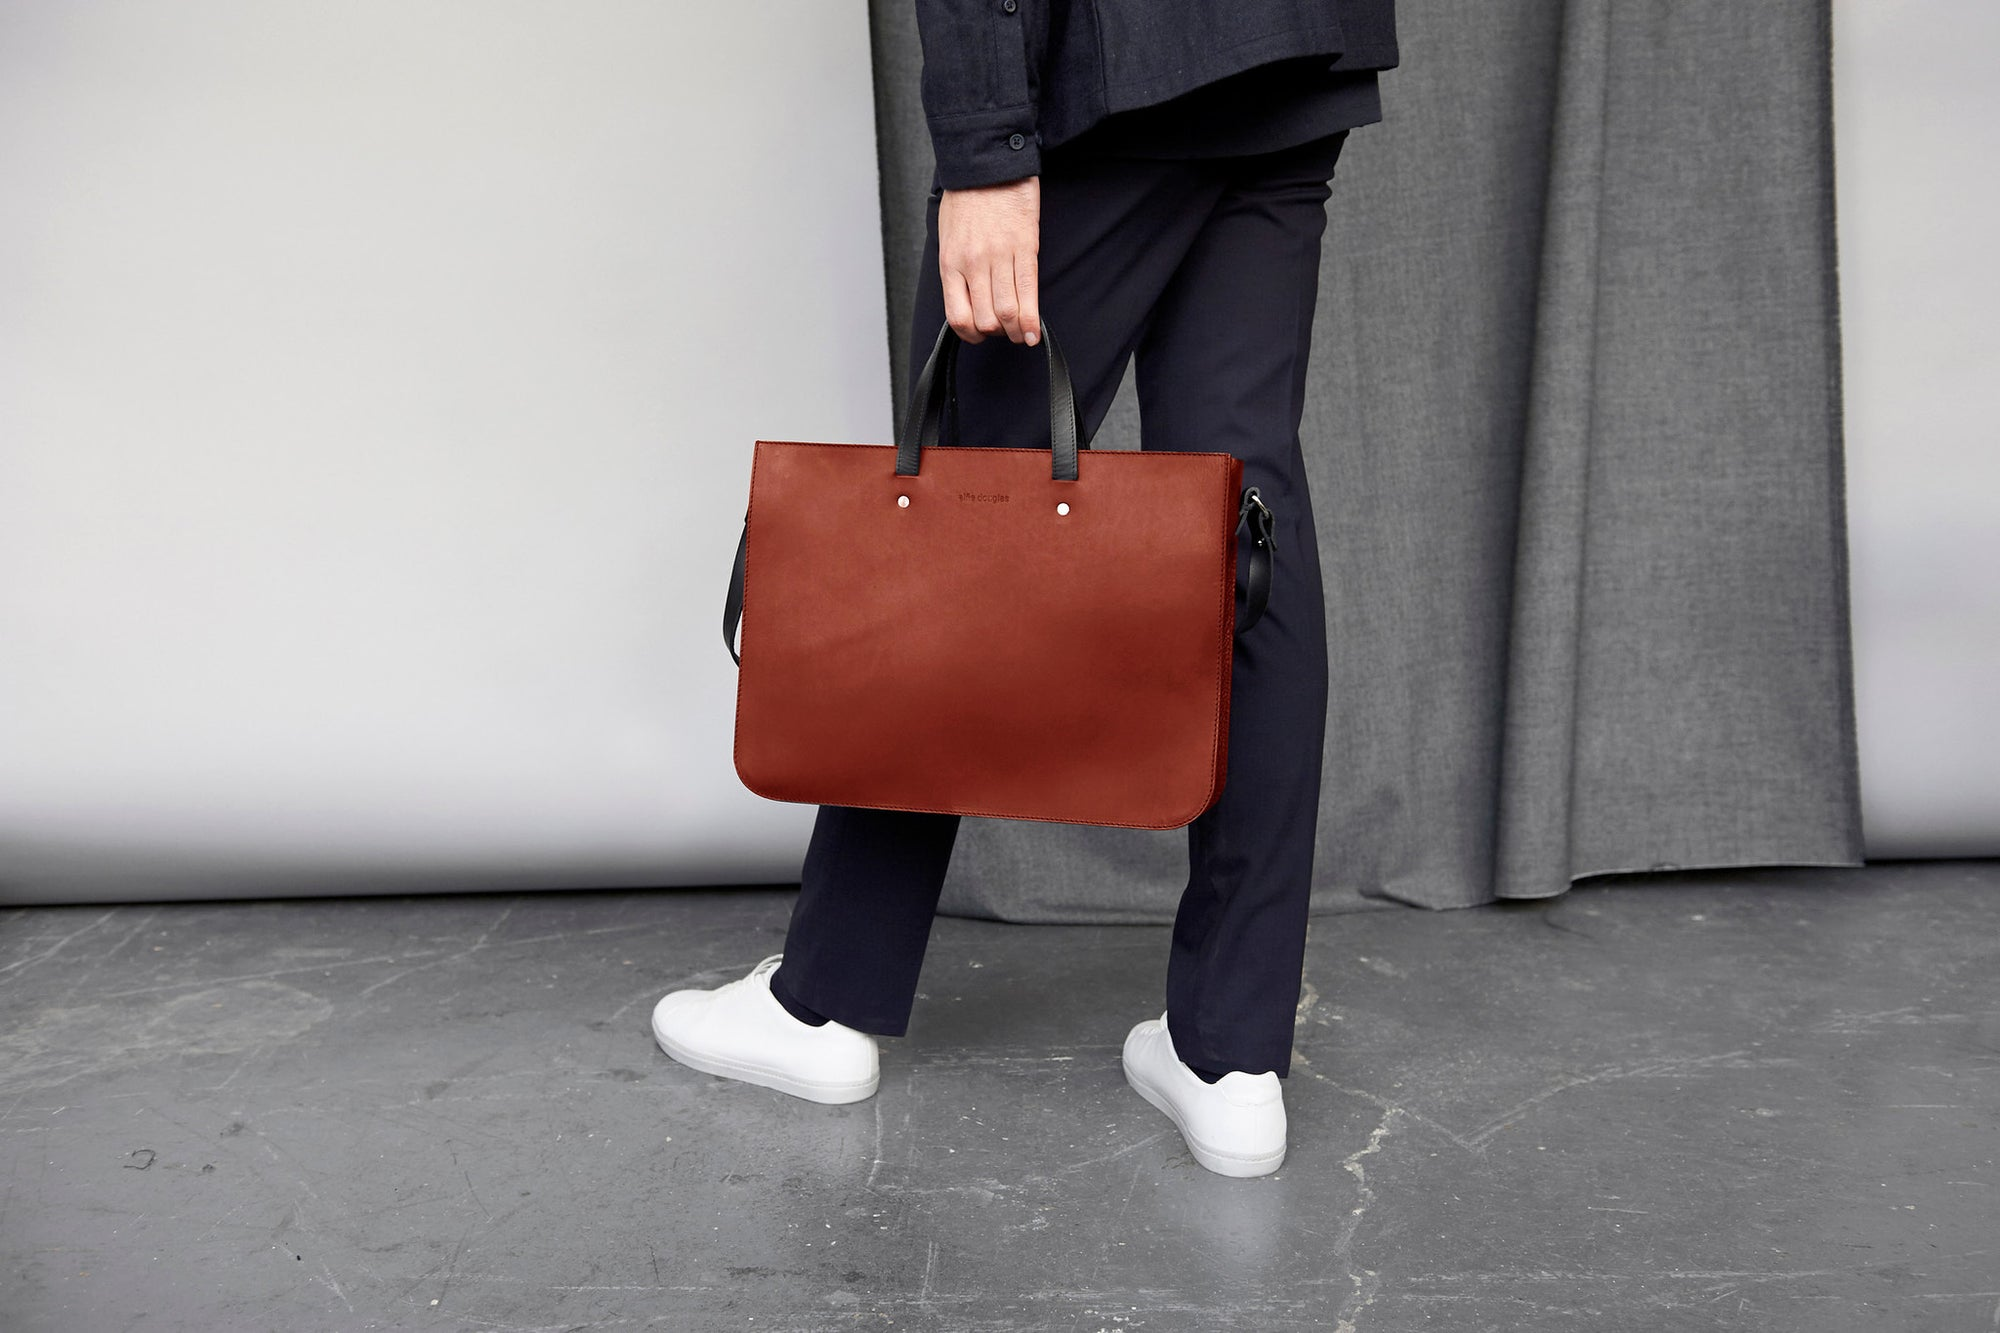 Look: The Briefcase Tote